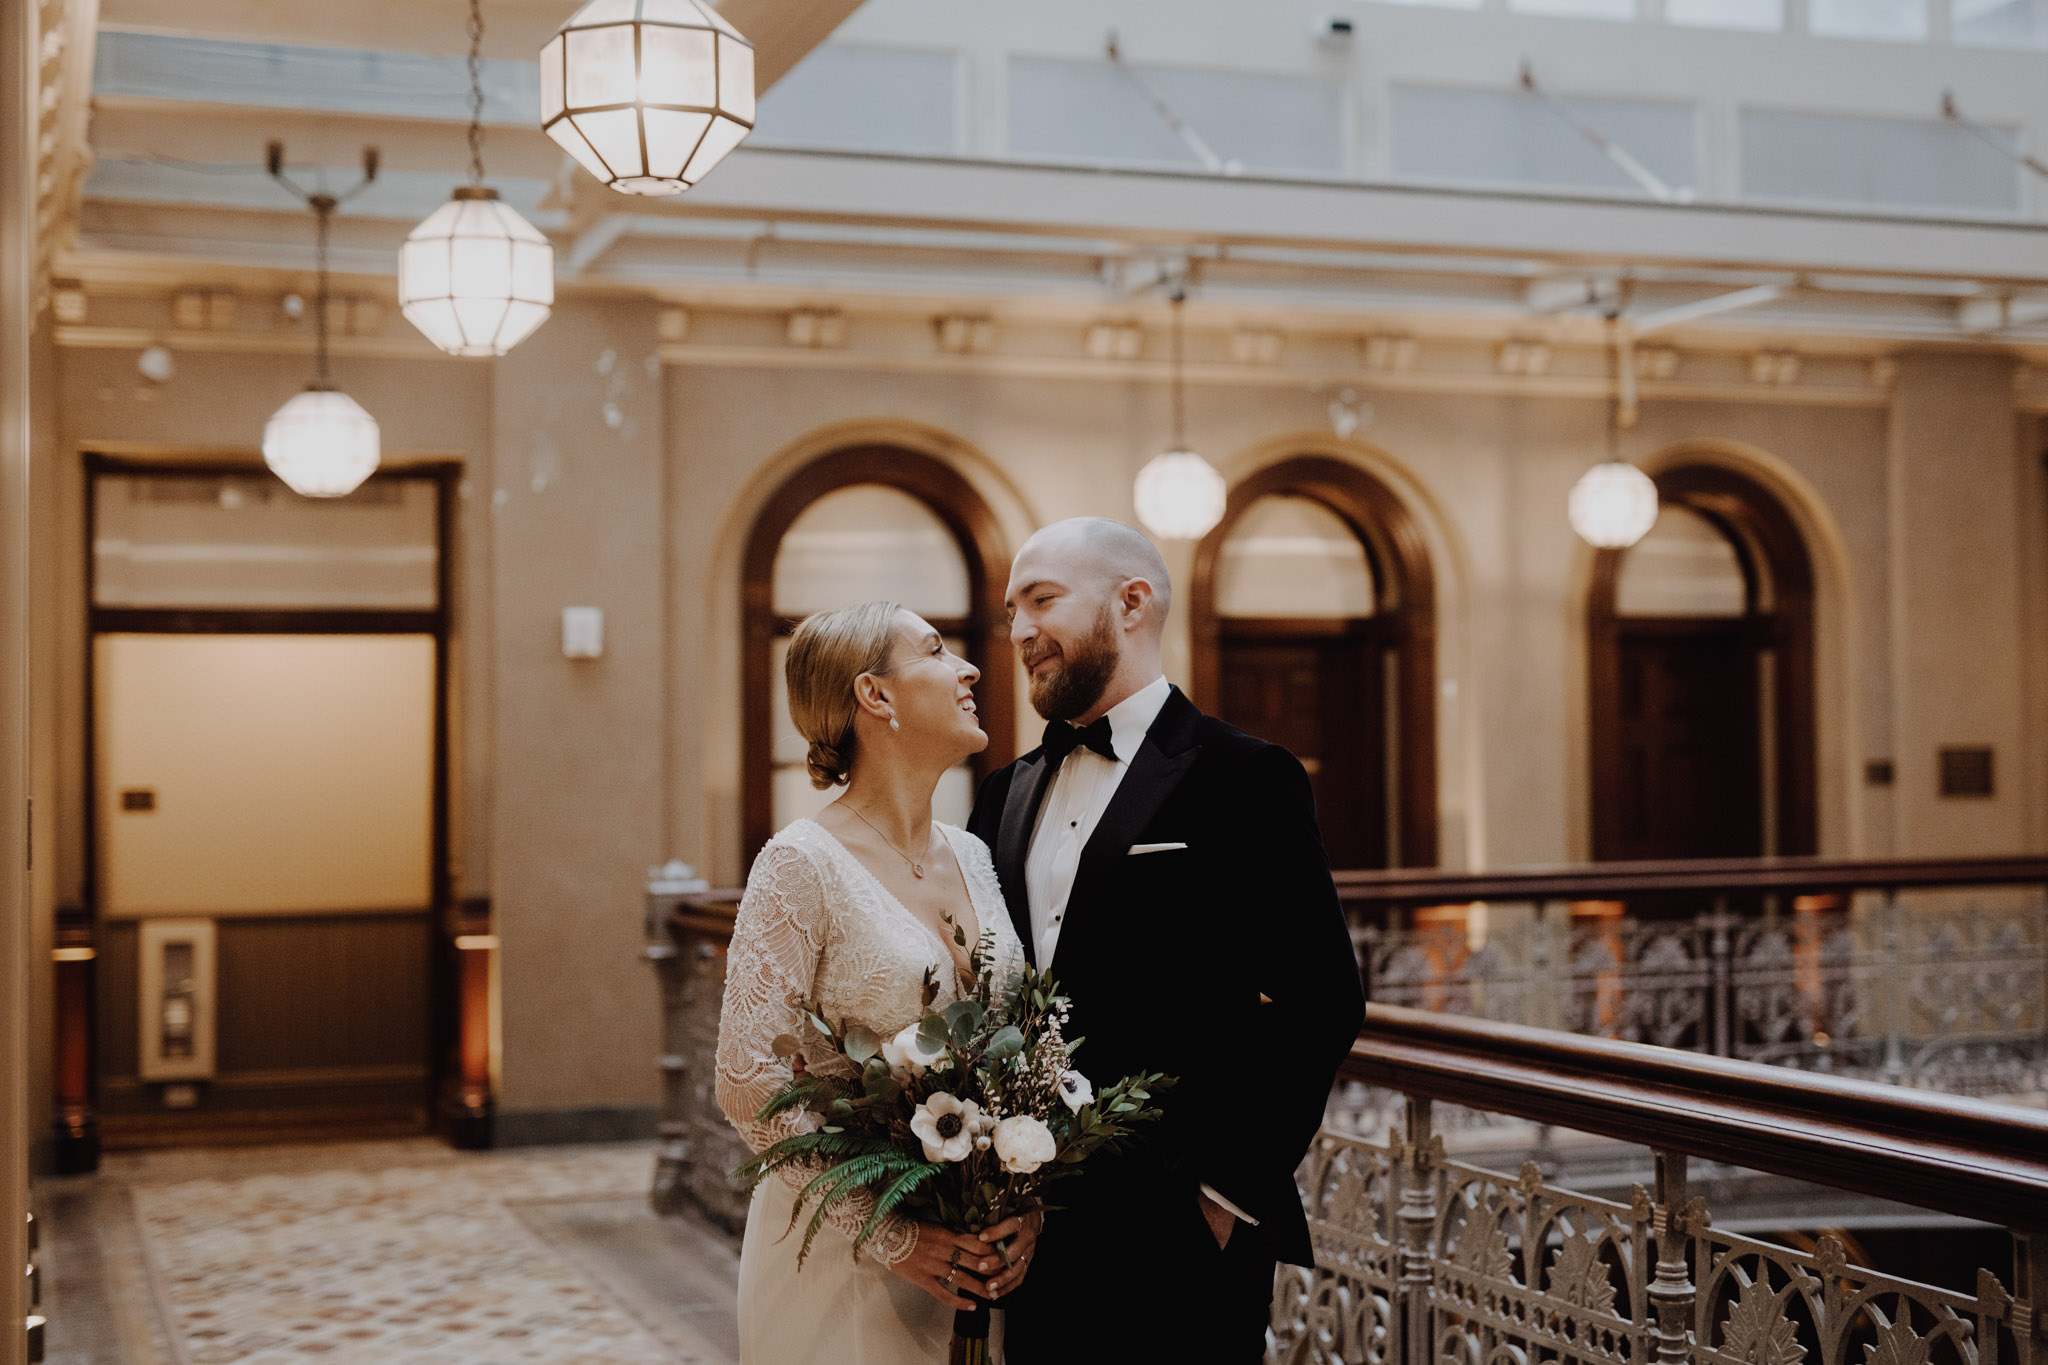 Downtown NYC Wedding - The Beekman Hotel - first look portraits